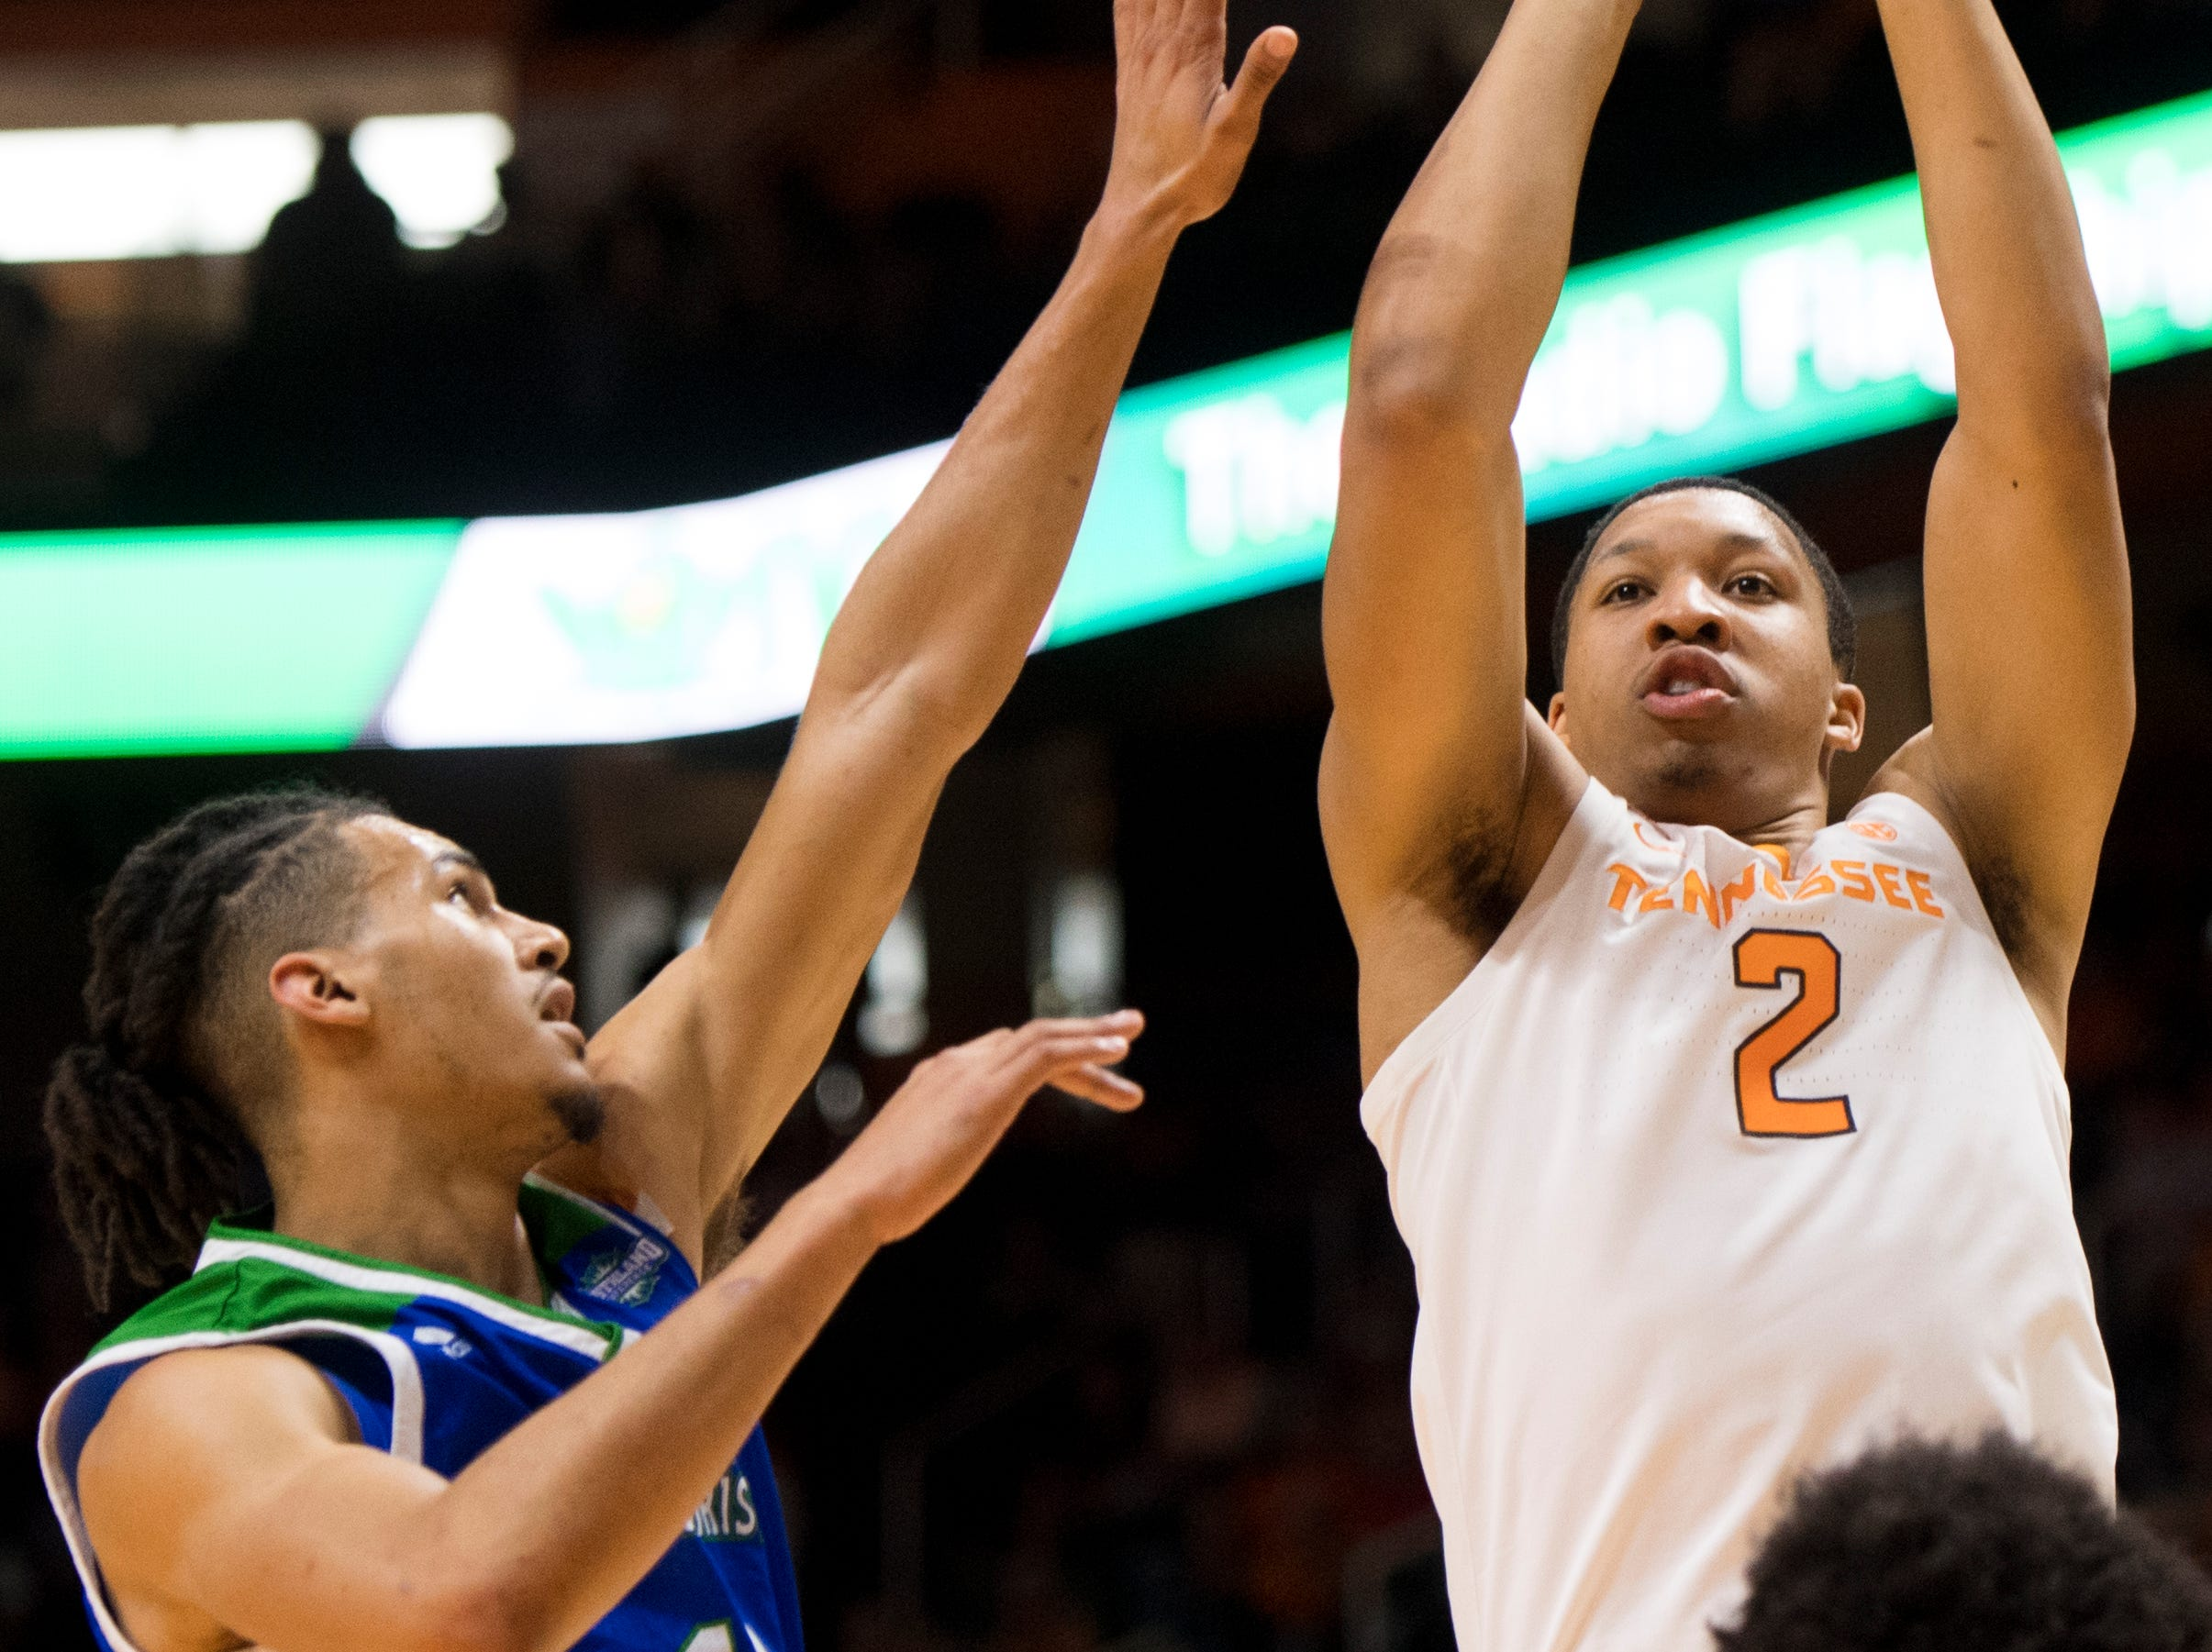 Tennessee forward Grant Williams (2) attempts a shot during the first half of the Tennessee Volunteers' home basketball game against the Texas A&M-Corpus Christi Islanders at Thompson-Boling Arena on Sunday, December 2, 2018.